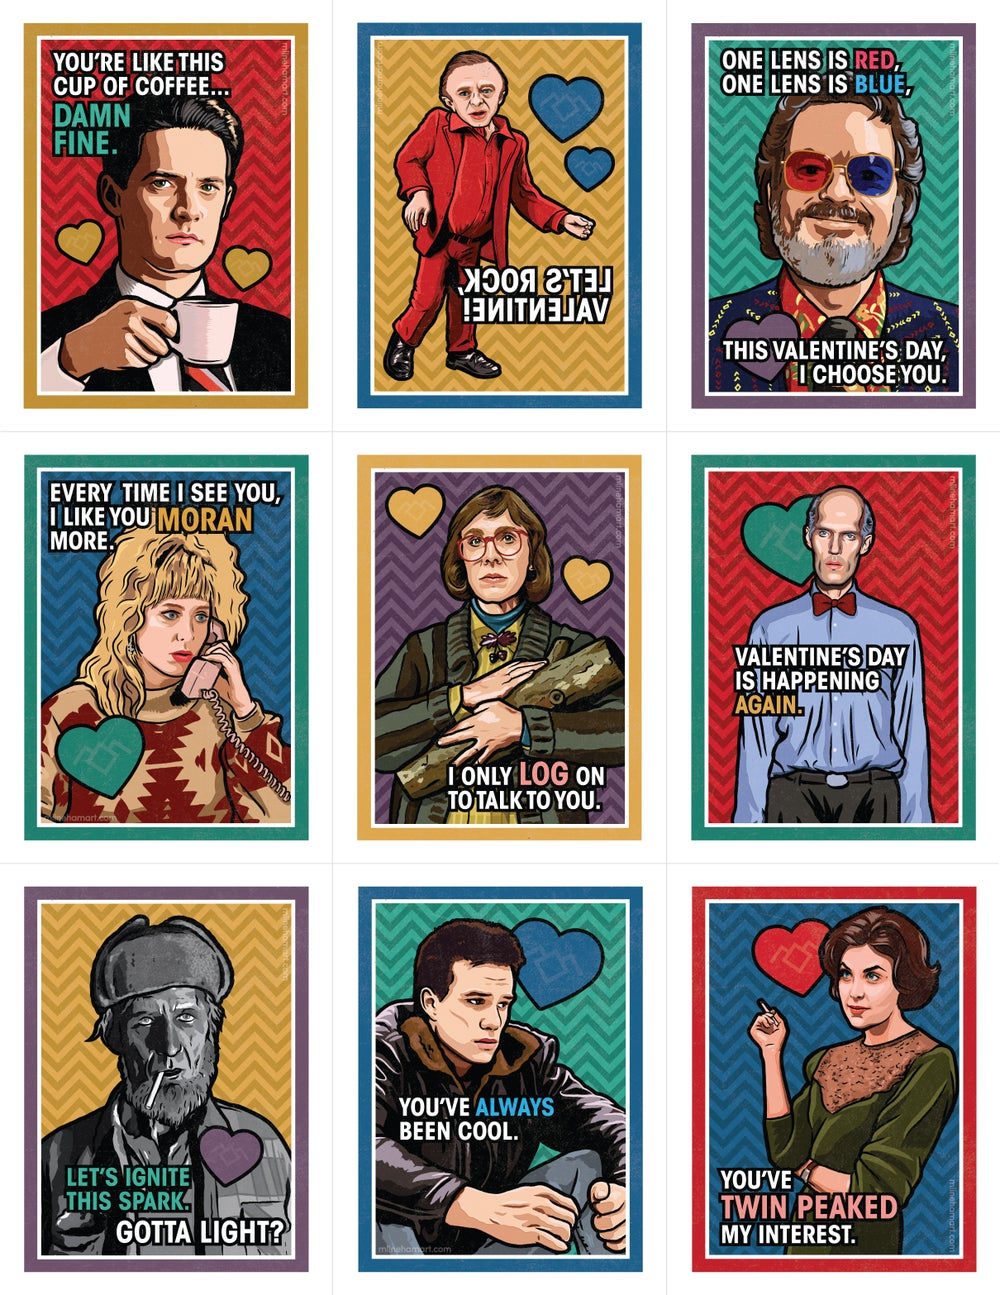 Damn Fine Valentine's Day Card Pack